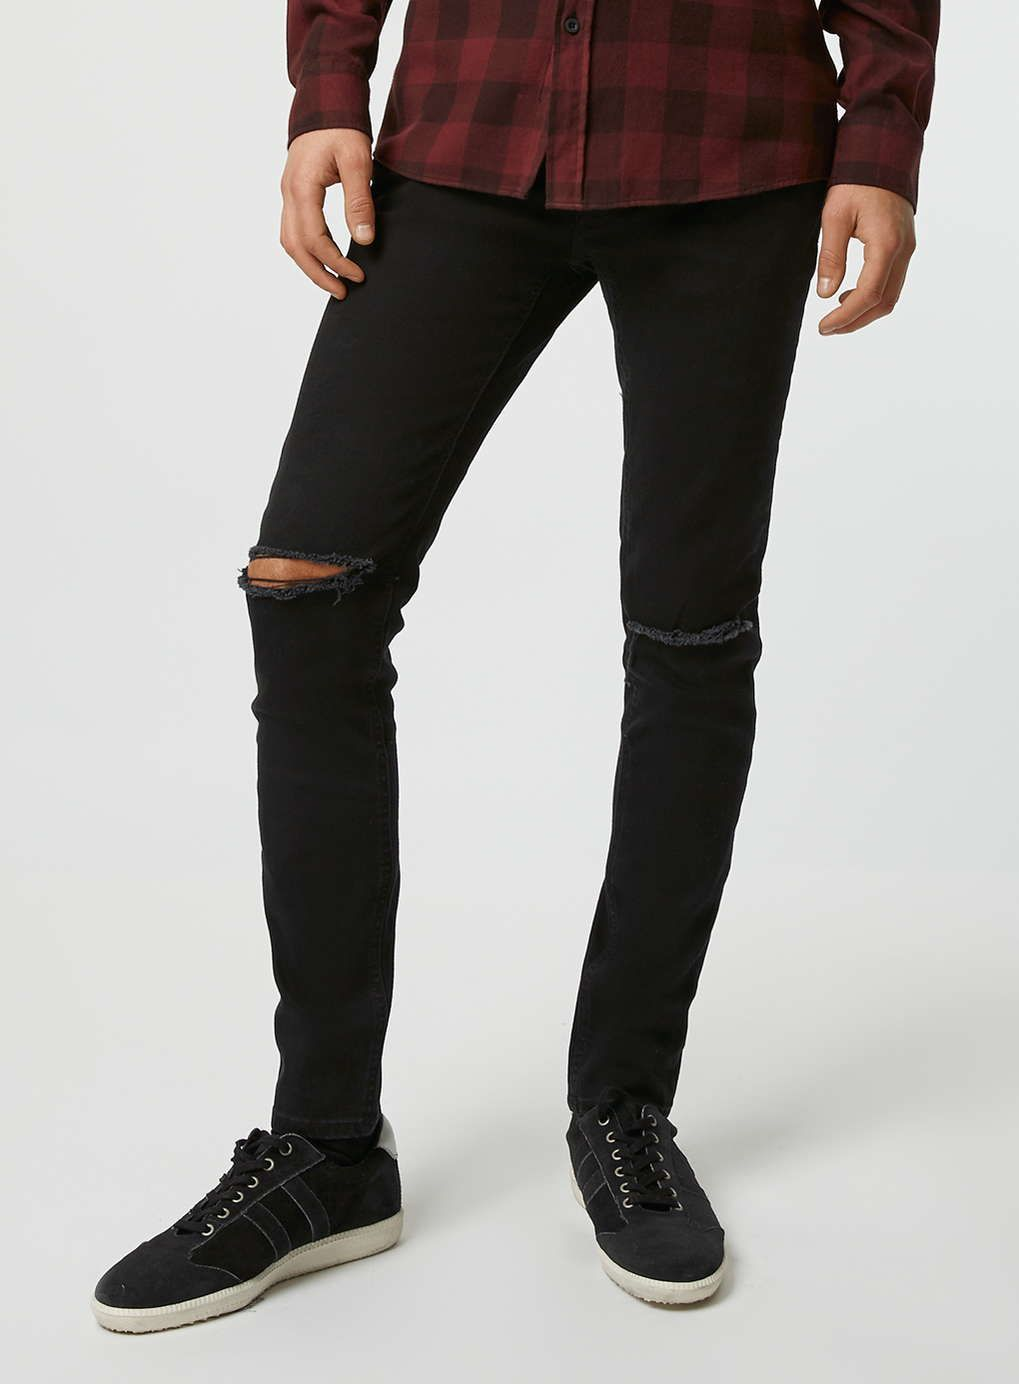 Washed Black Rip Stretch Skinny Jeans | Shops Black ripped jeans